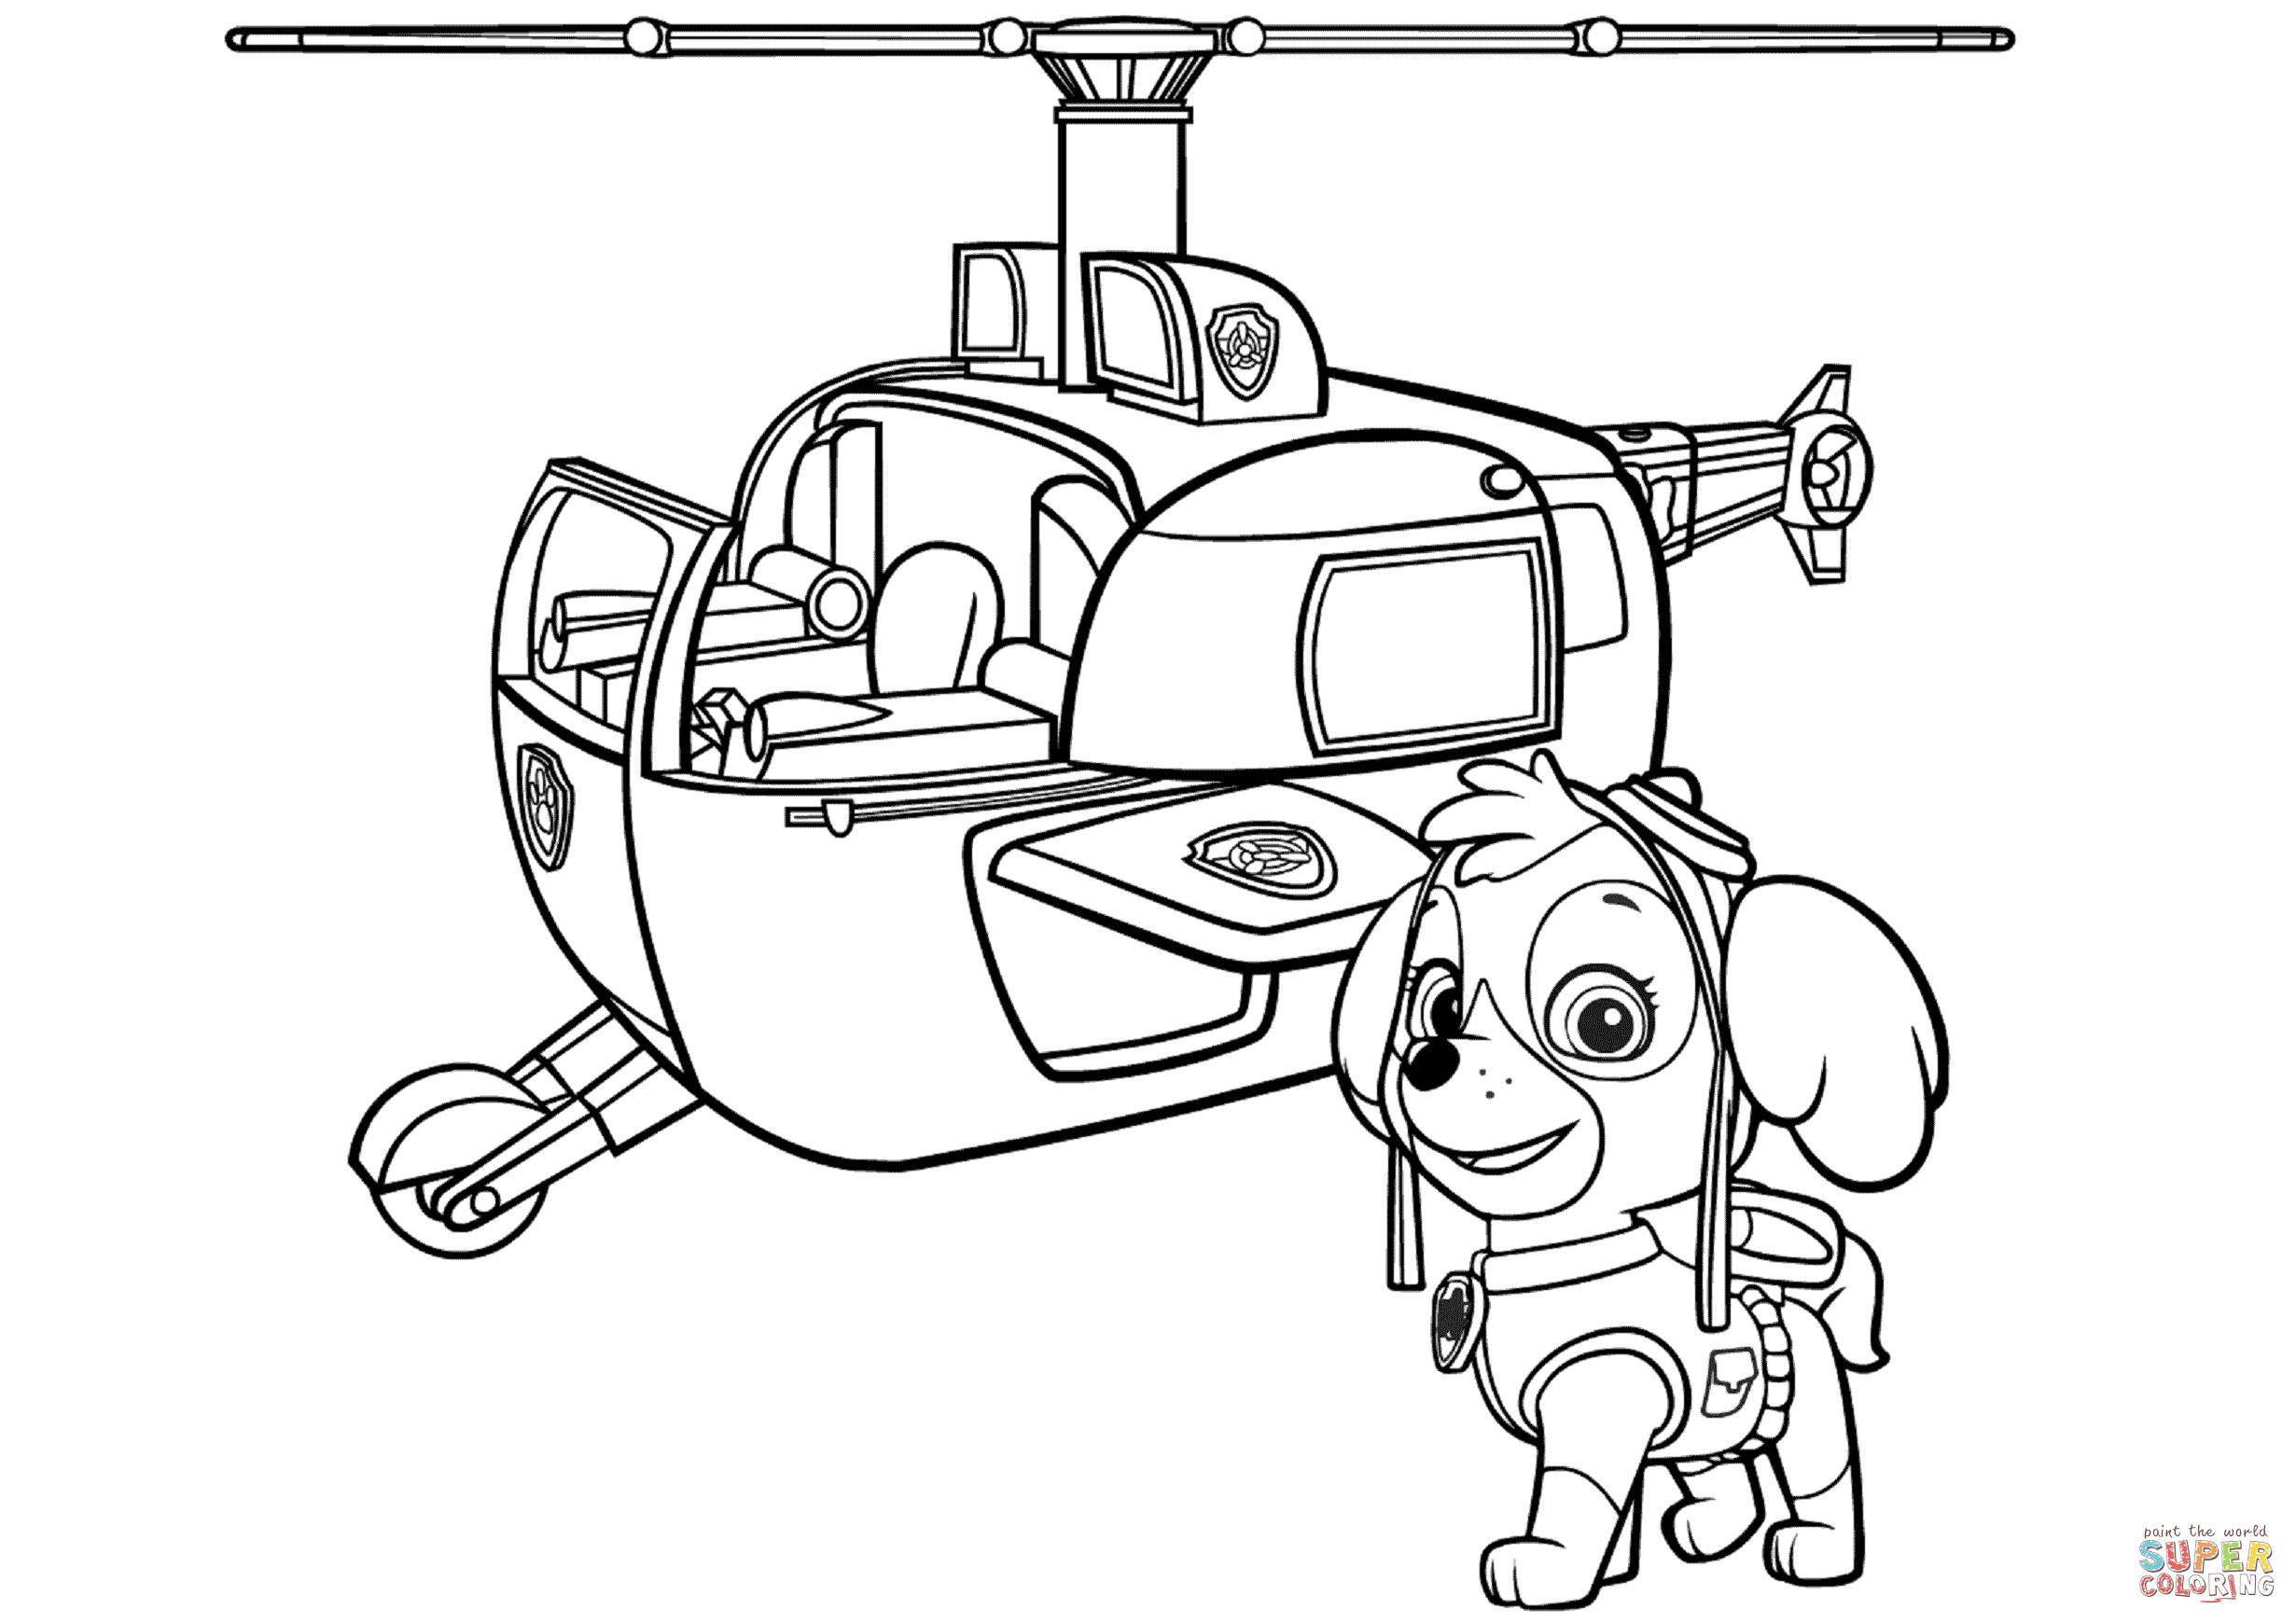 2461x1740 Paw Patrol Skye's Helicopter Coloring Page Free Printable